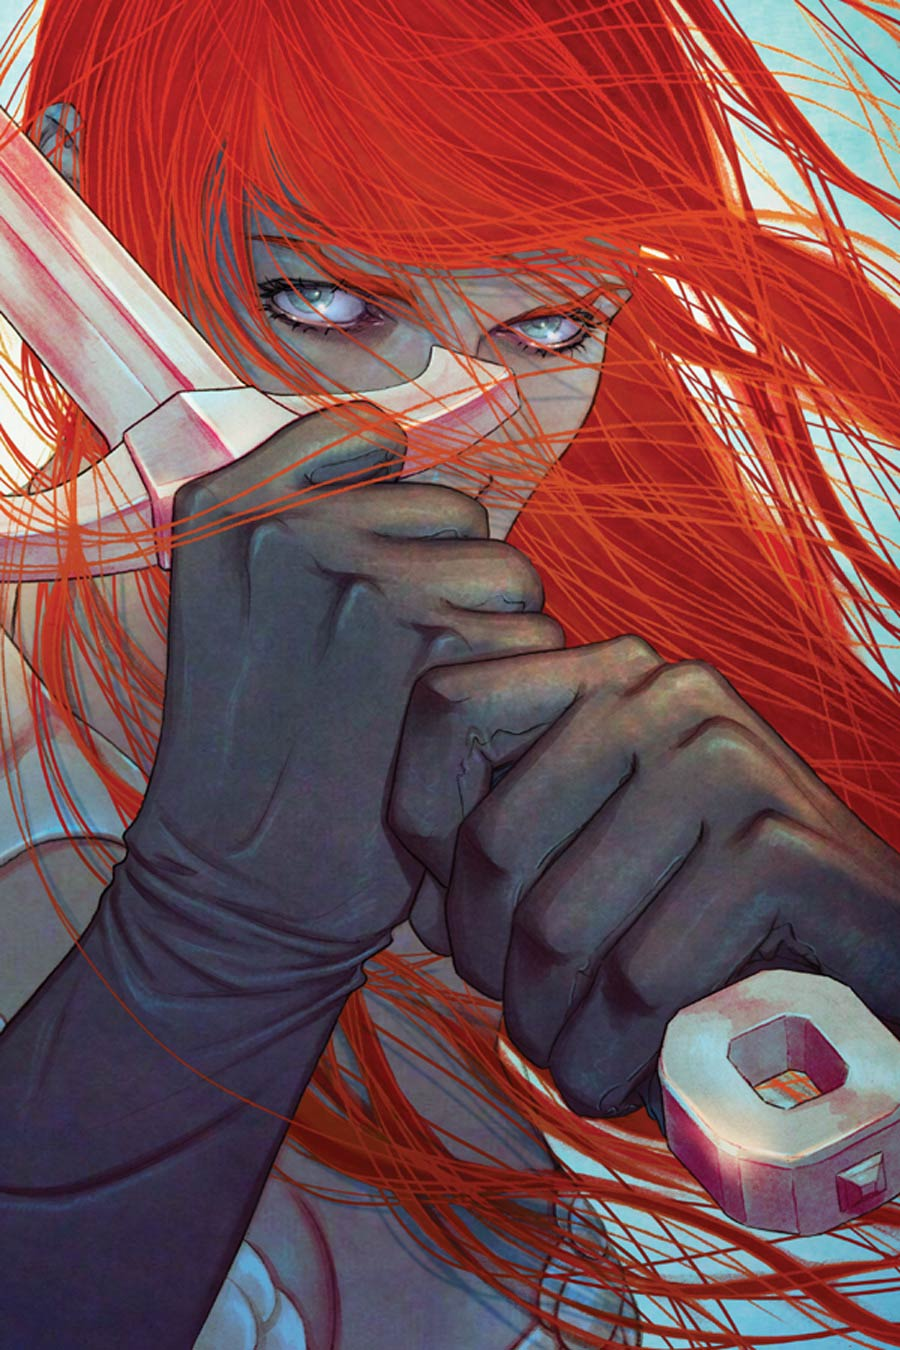 Red Sonja Vol 5 #12 Cover F High-End Jenny Frison Virgin Art Ultra-Limited Variant Cover (ONLY 50 COPIES IN EXISTENCE!)